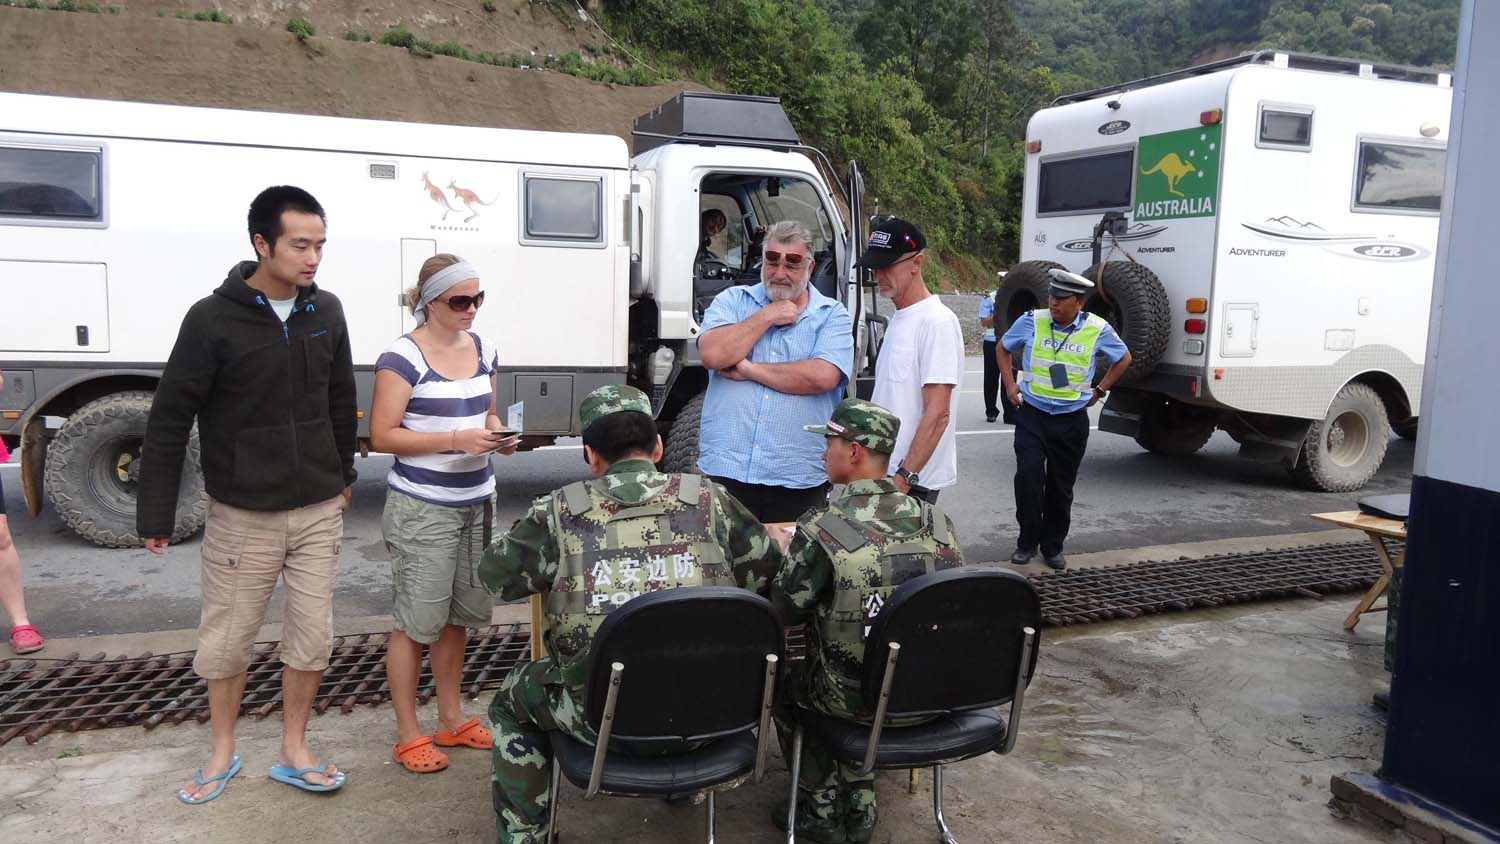 Another police check, our guide just added more confusion. He seems to get very nervous when any official is around.